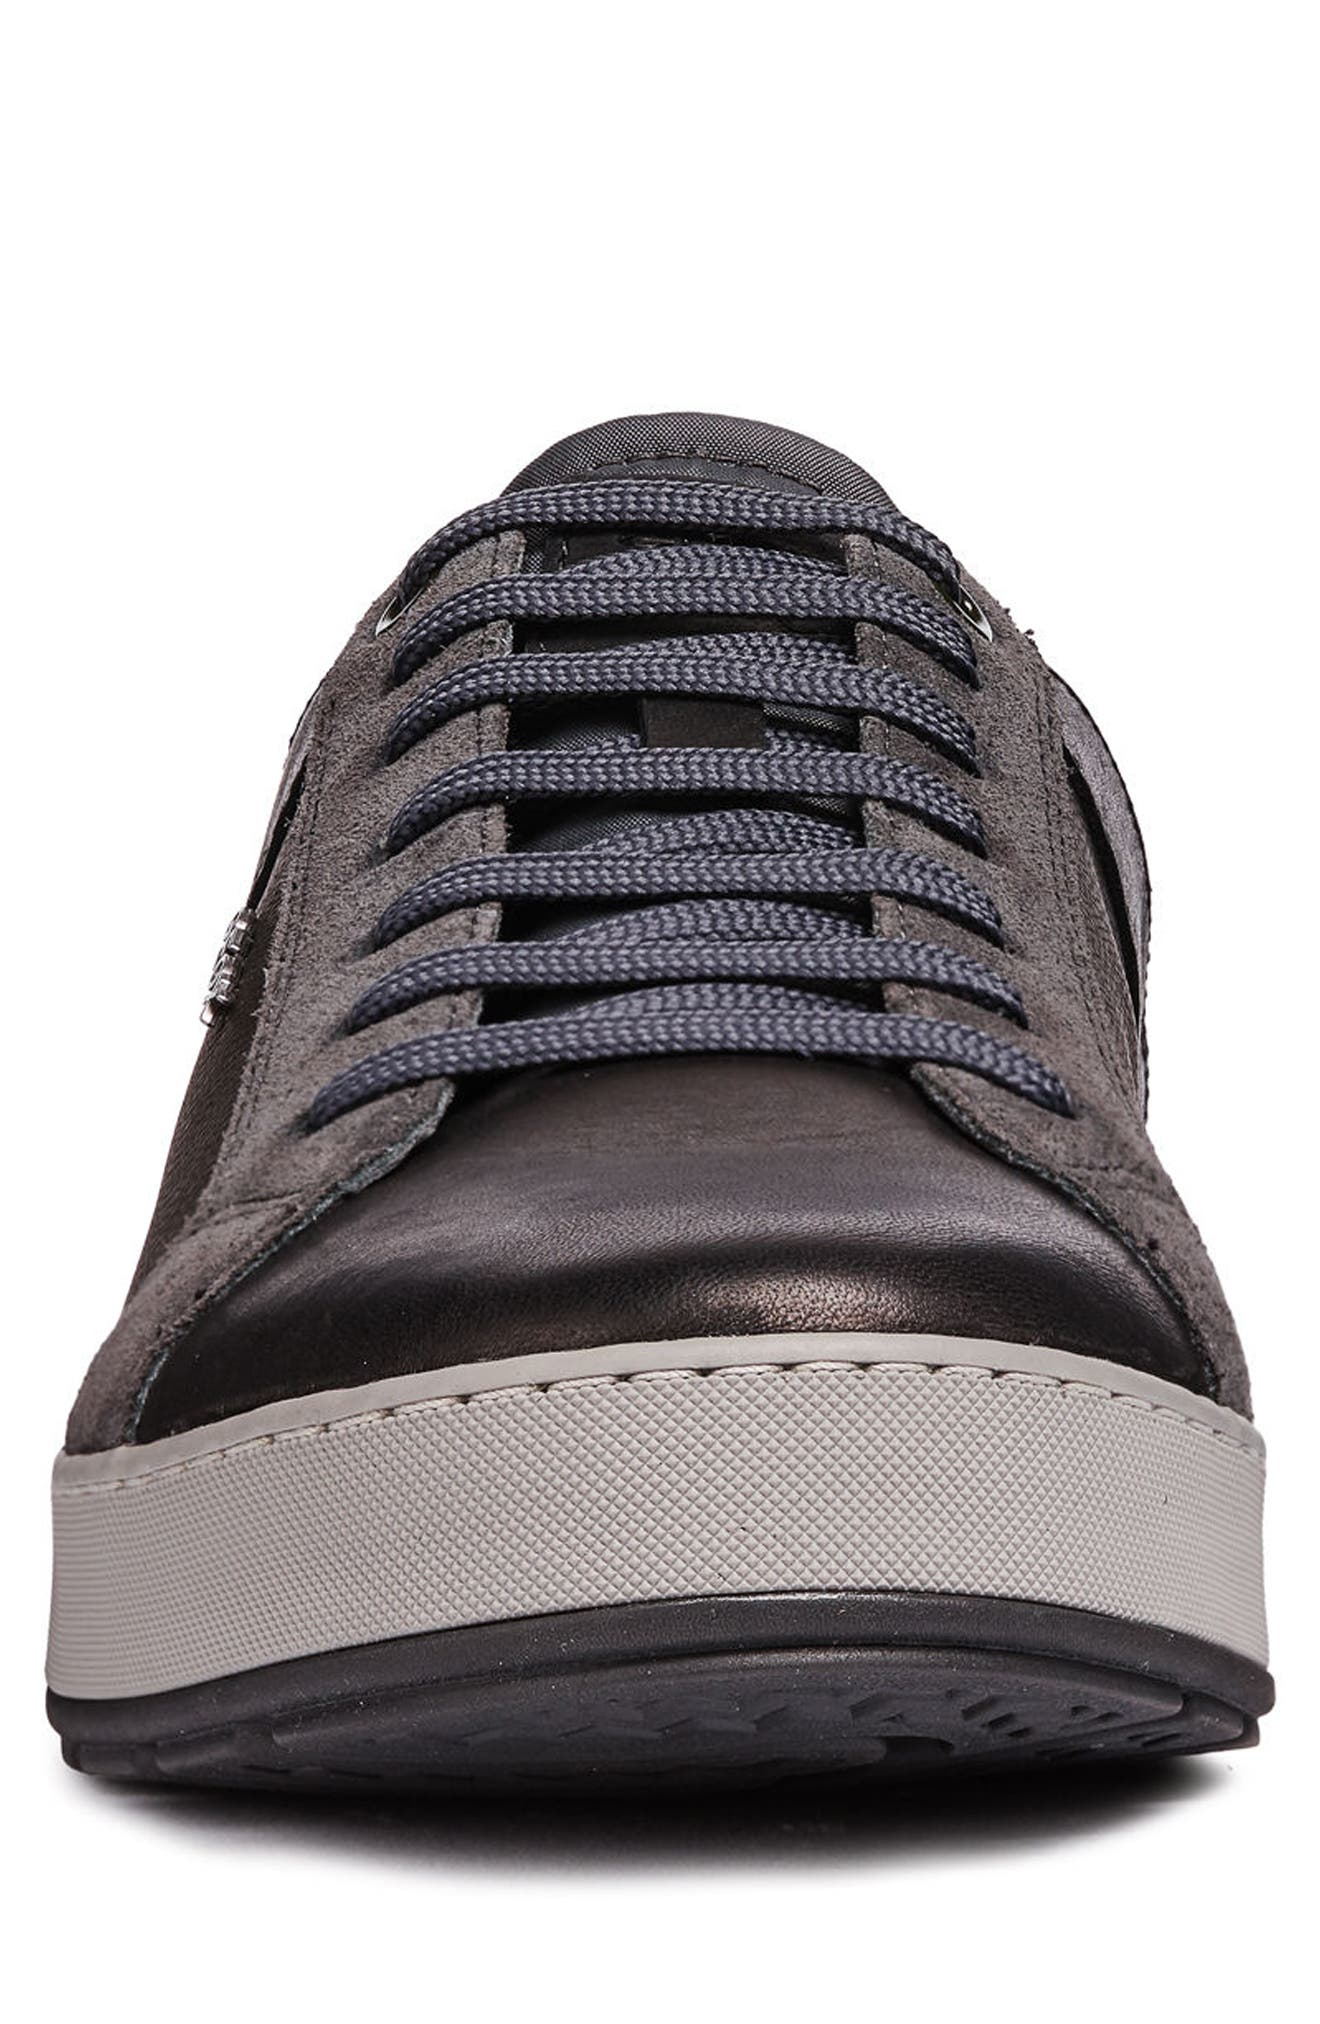 Ariam 1 Low Top Sneaker,                             Alternate thumbnail 4, color,                             BLACK/ ANTHRACITE LEATHER